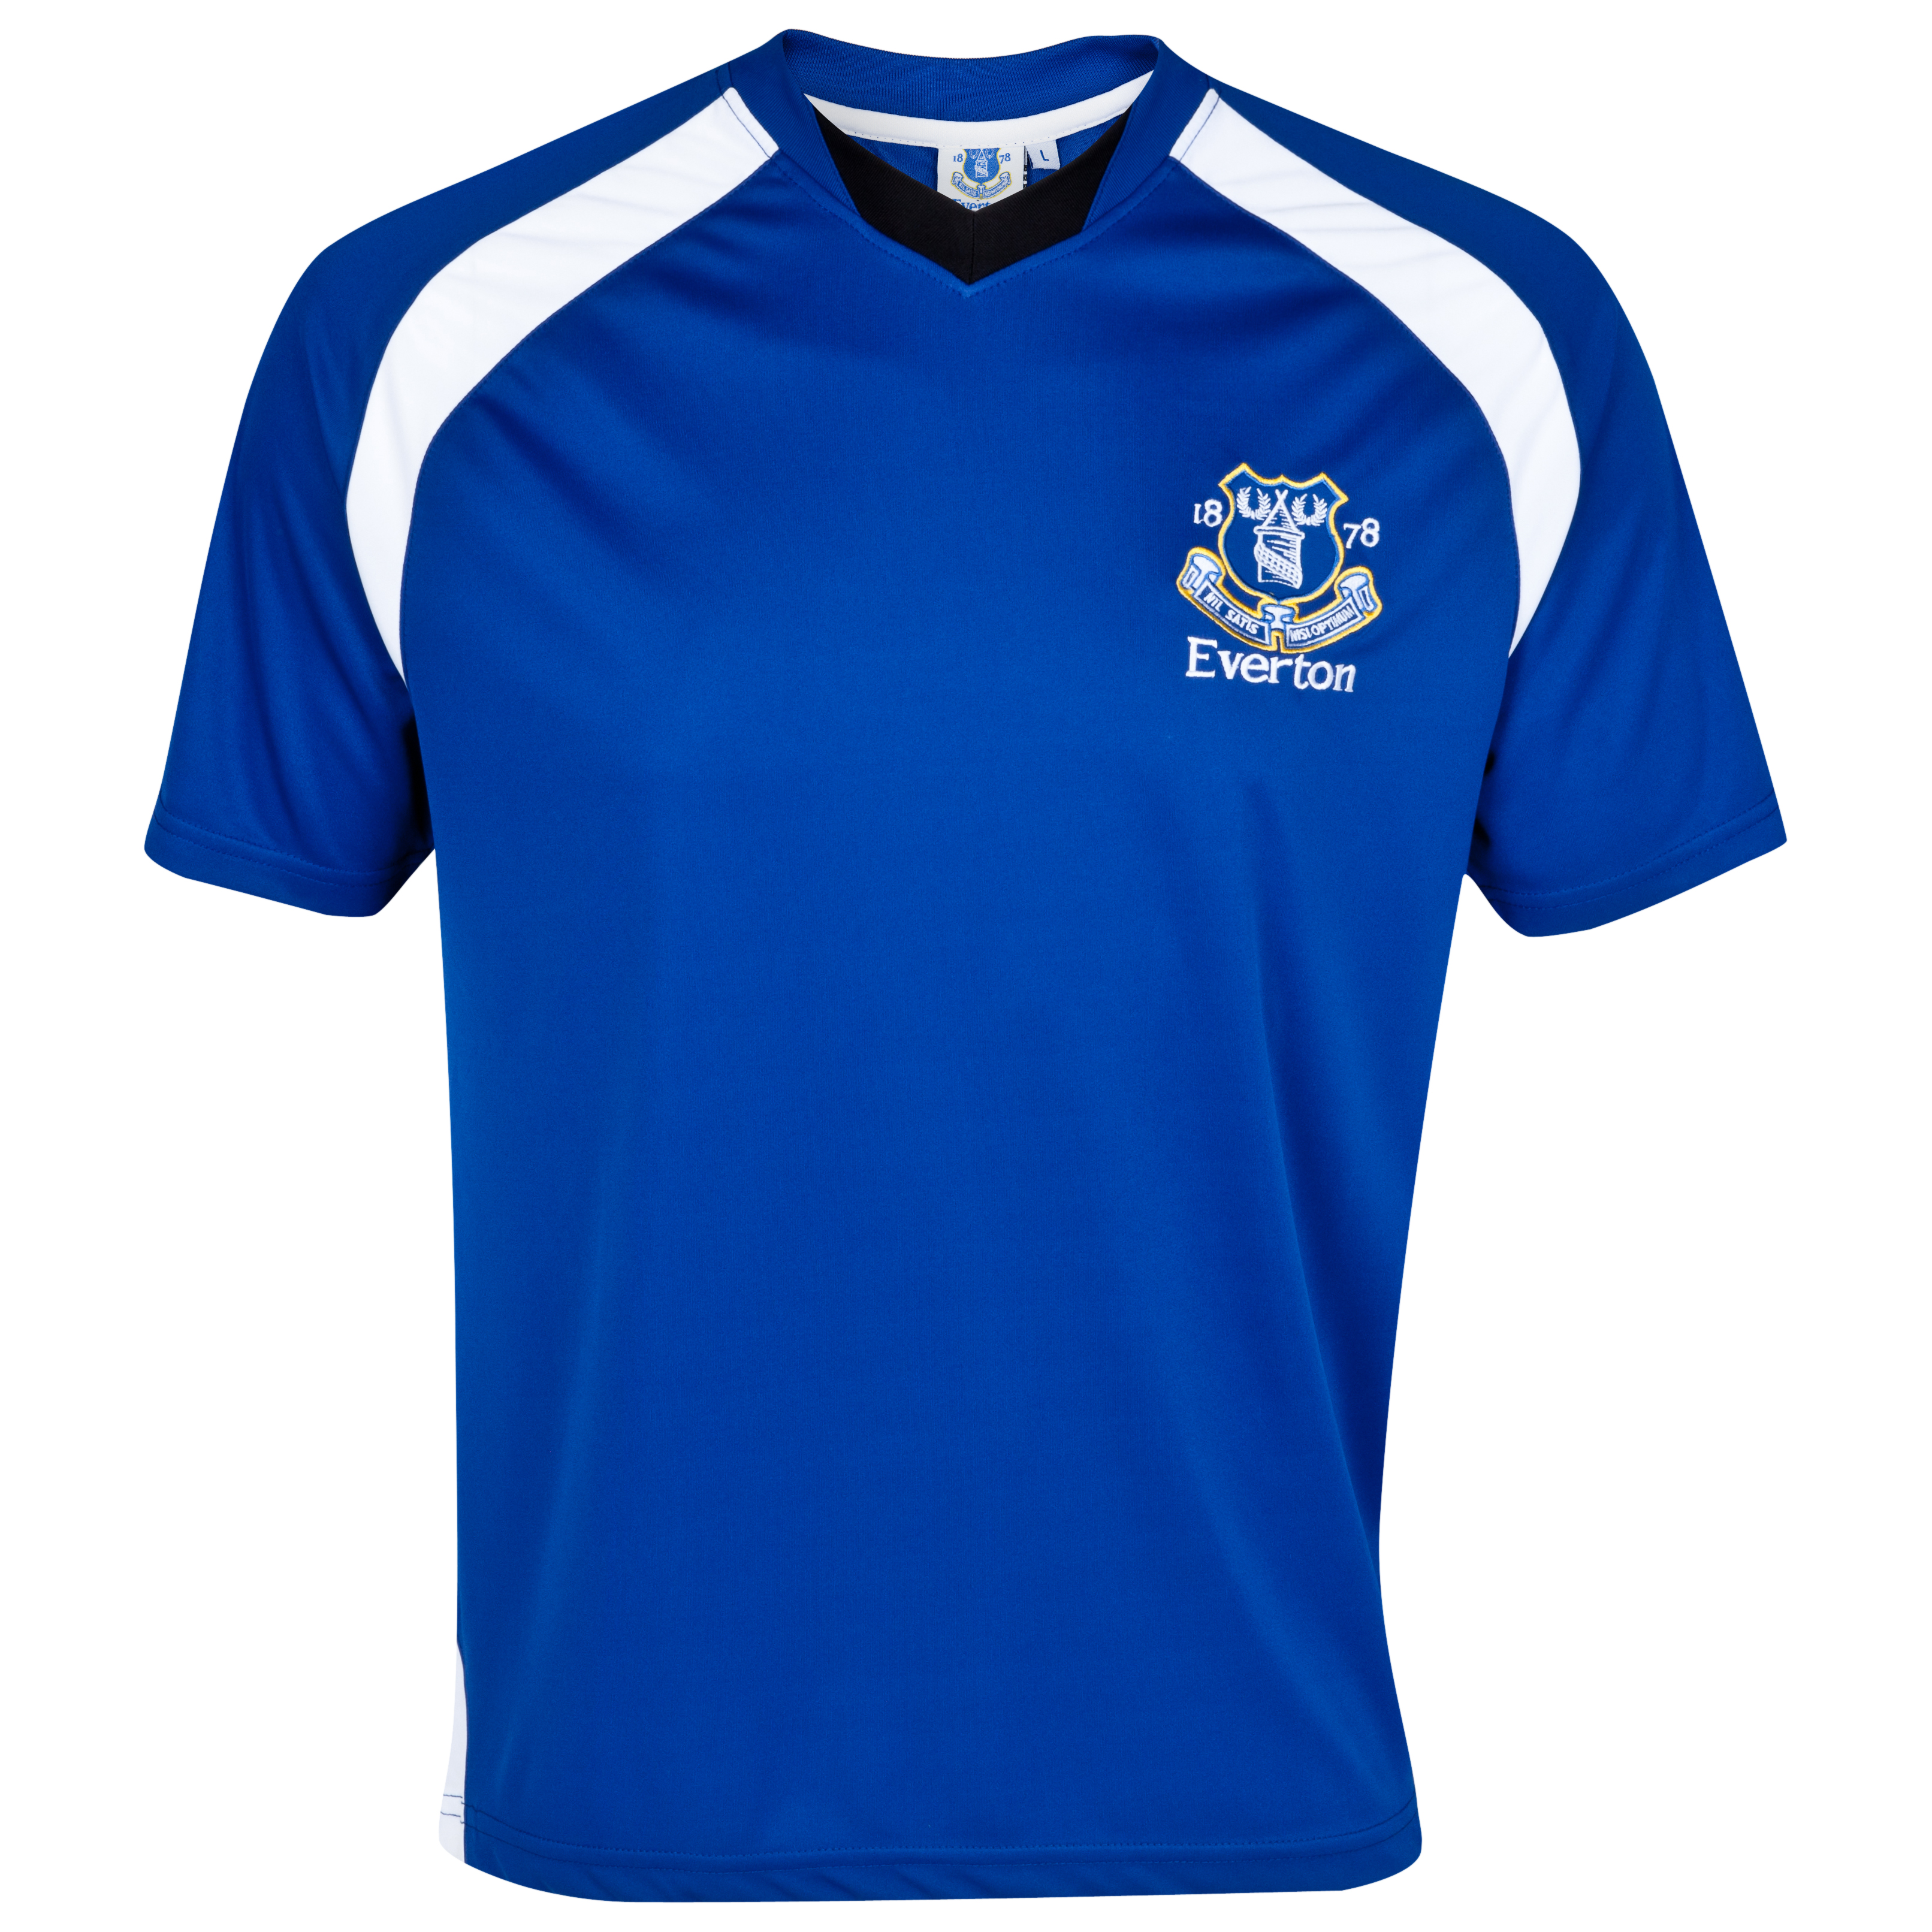 Everton Essential Compete V-Neck Panel T-Shirt - Everton Blue